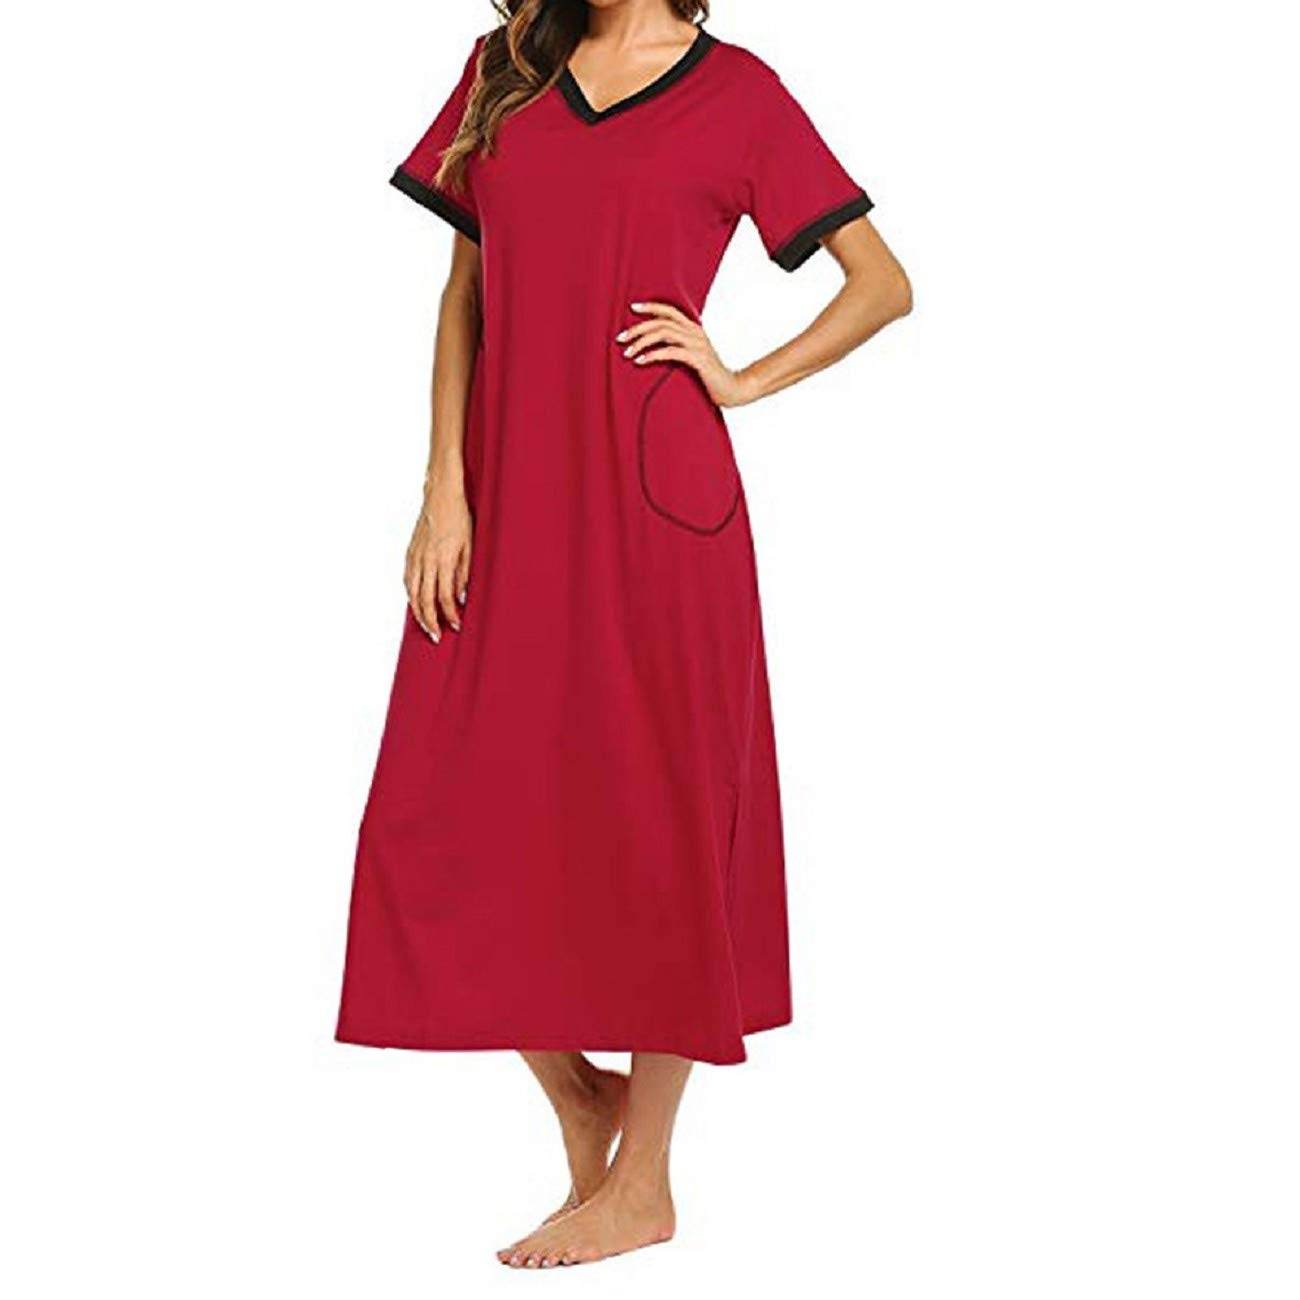 FAPIZI Nightgown Womens Sleepshirts Short Sleeve Nightshirt Maxi Long Sleepwear Pajamas with Pockets Wine Red